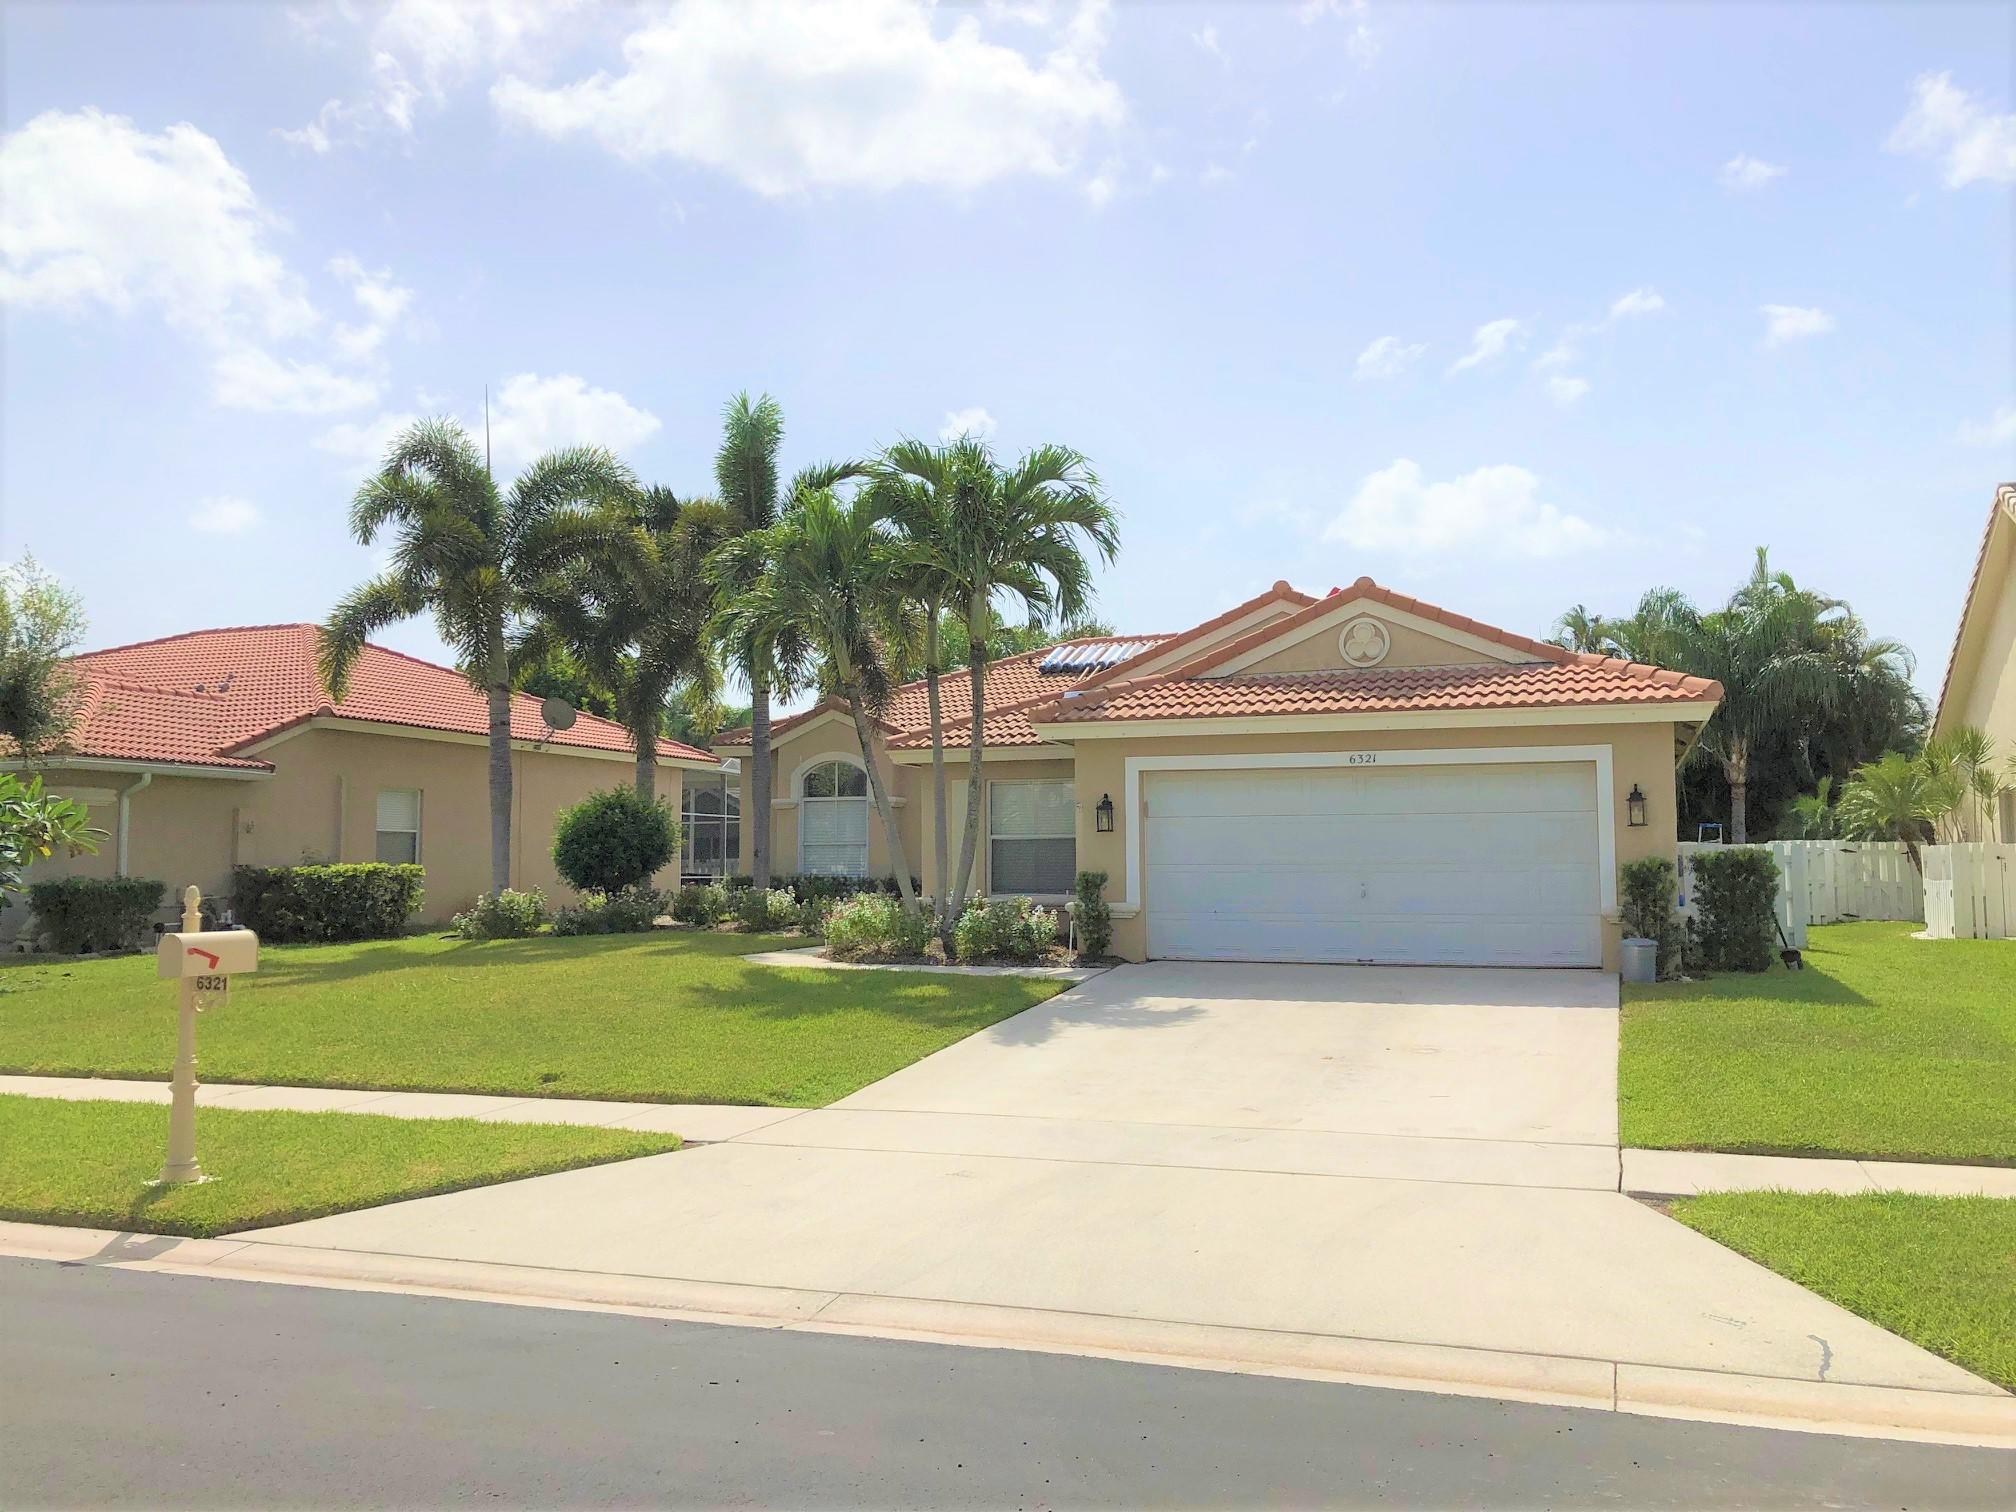 Home for sale in Turnbury Village Lake Worth Florida